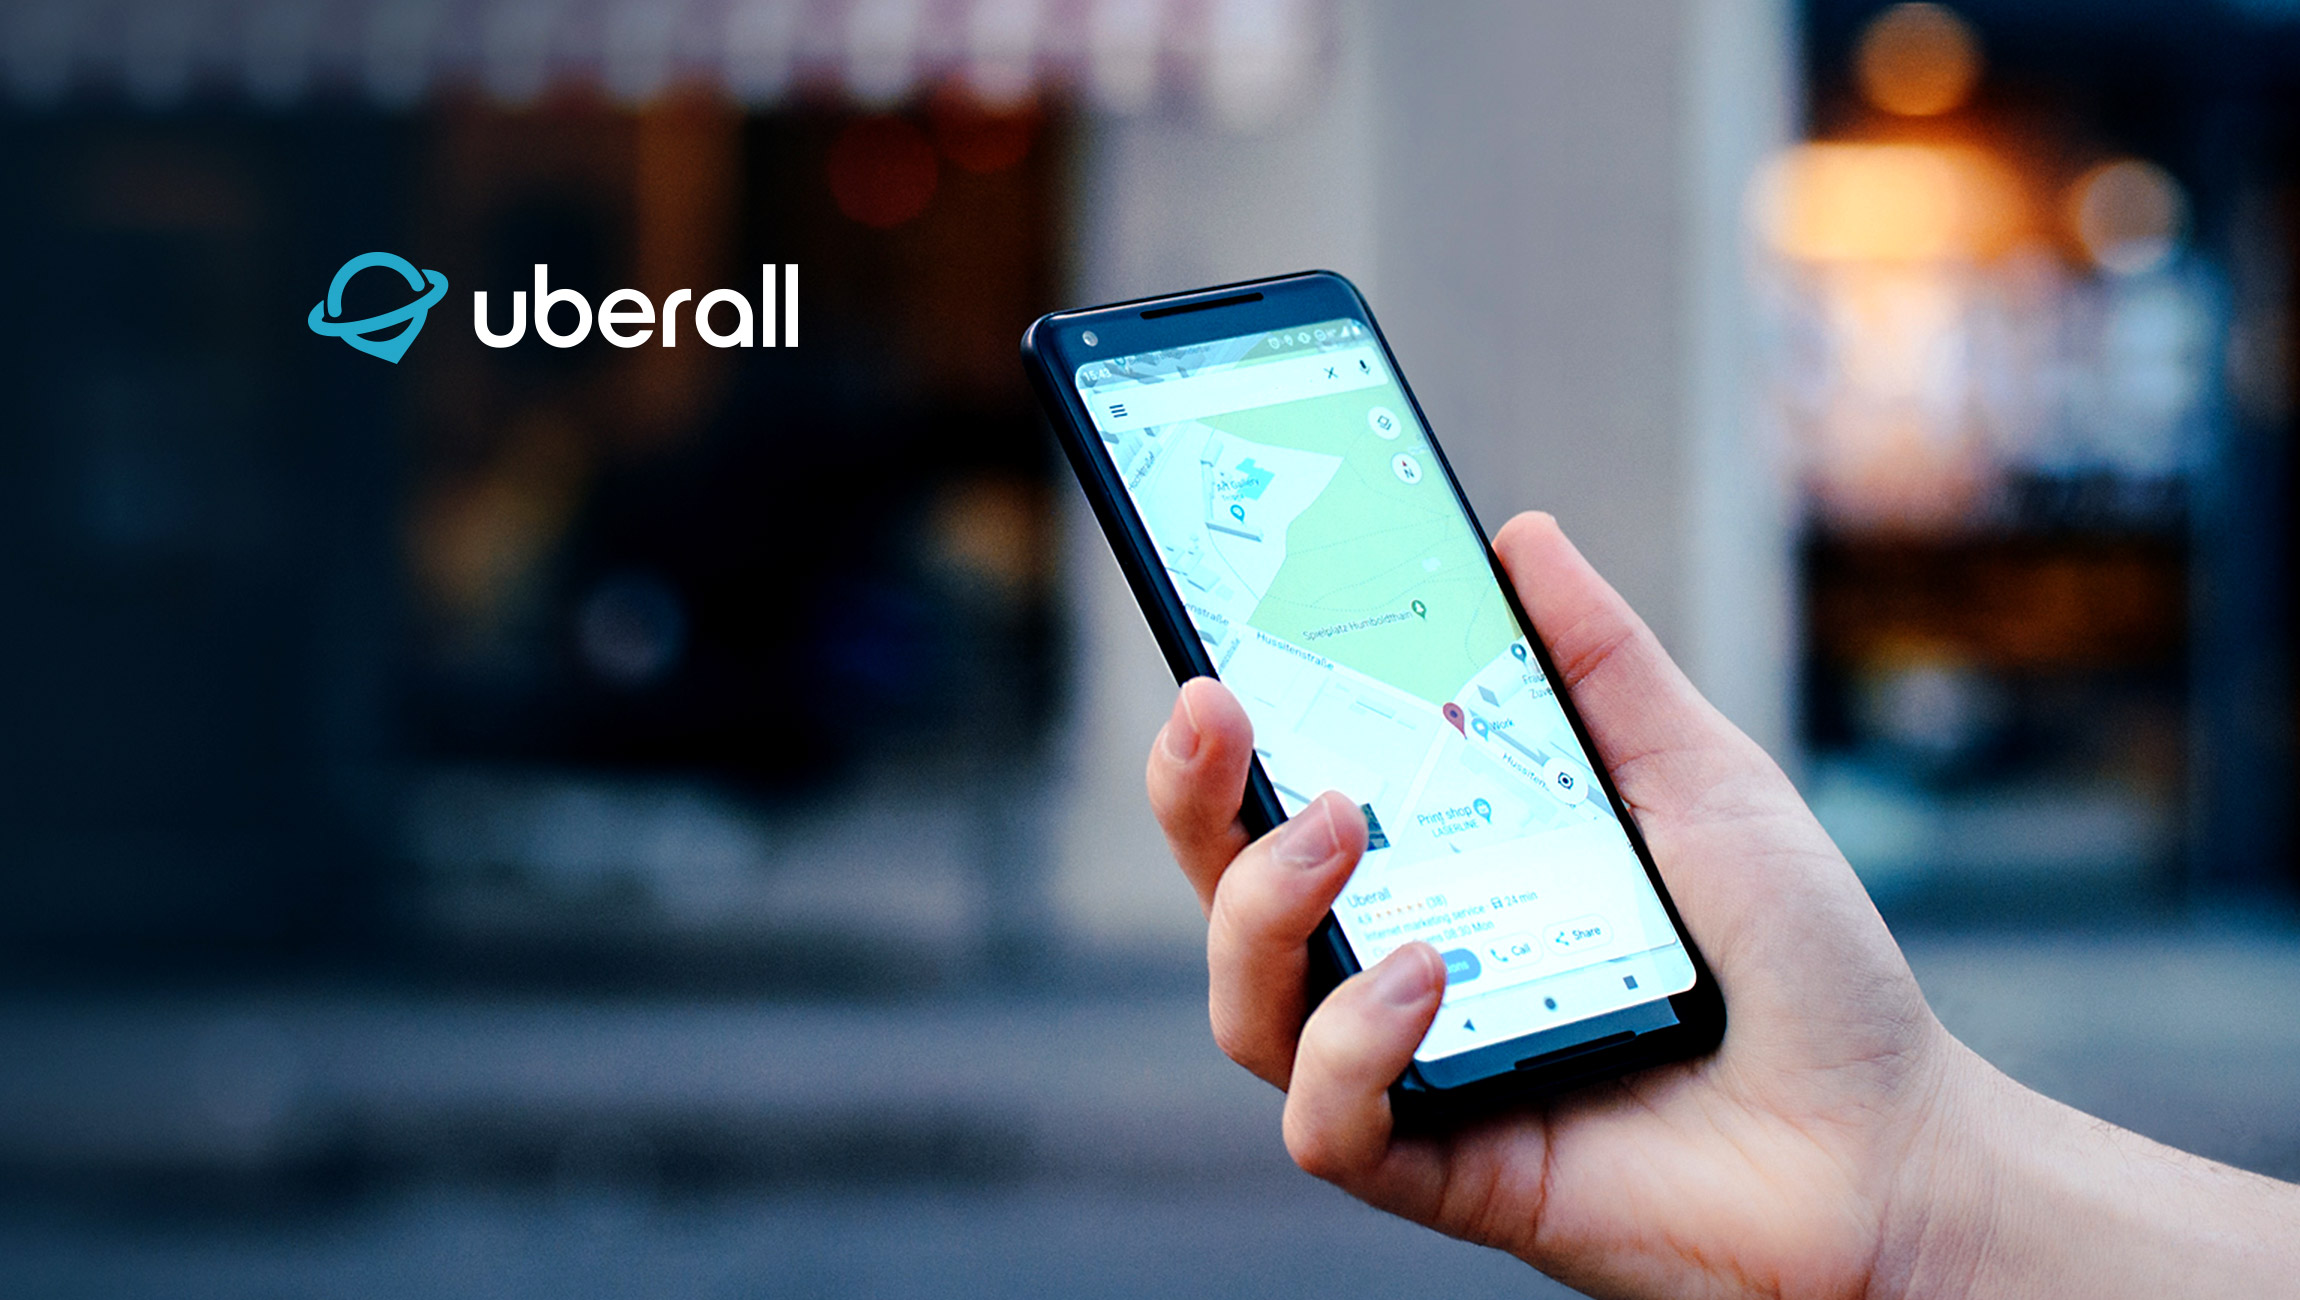 Uberall Study: Over 20% Using Voice Search Every Week